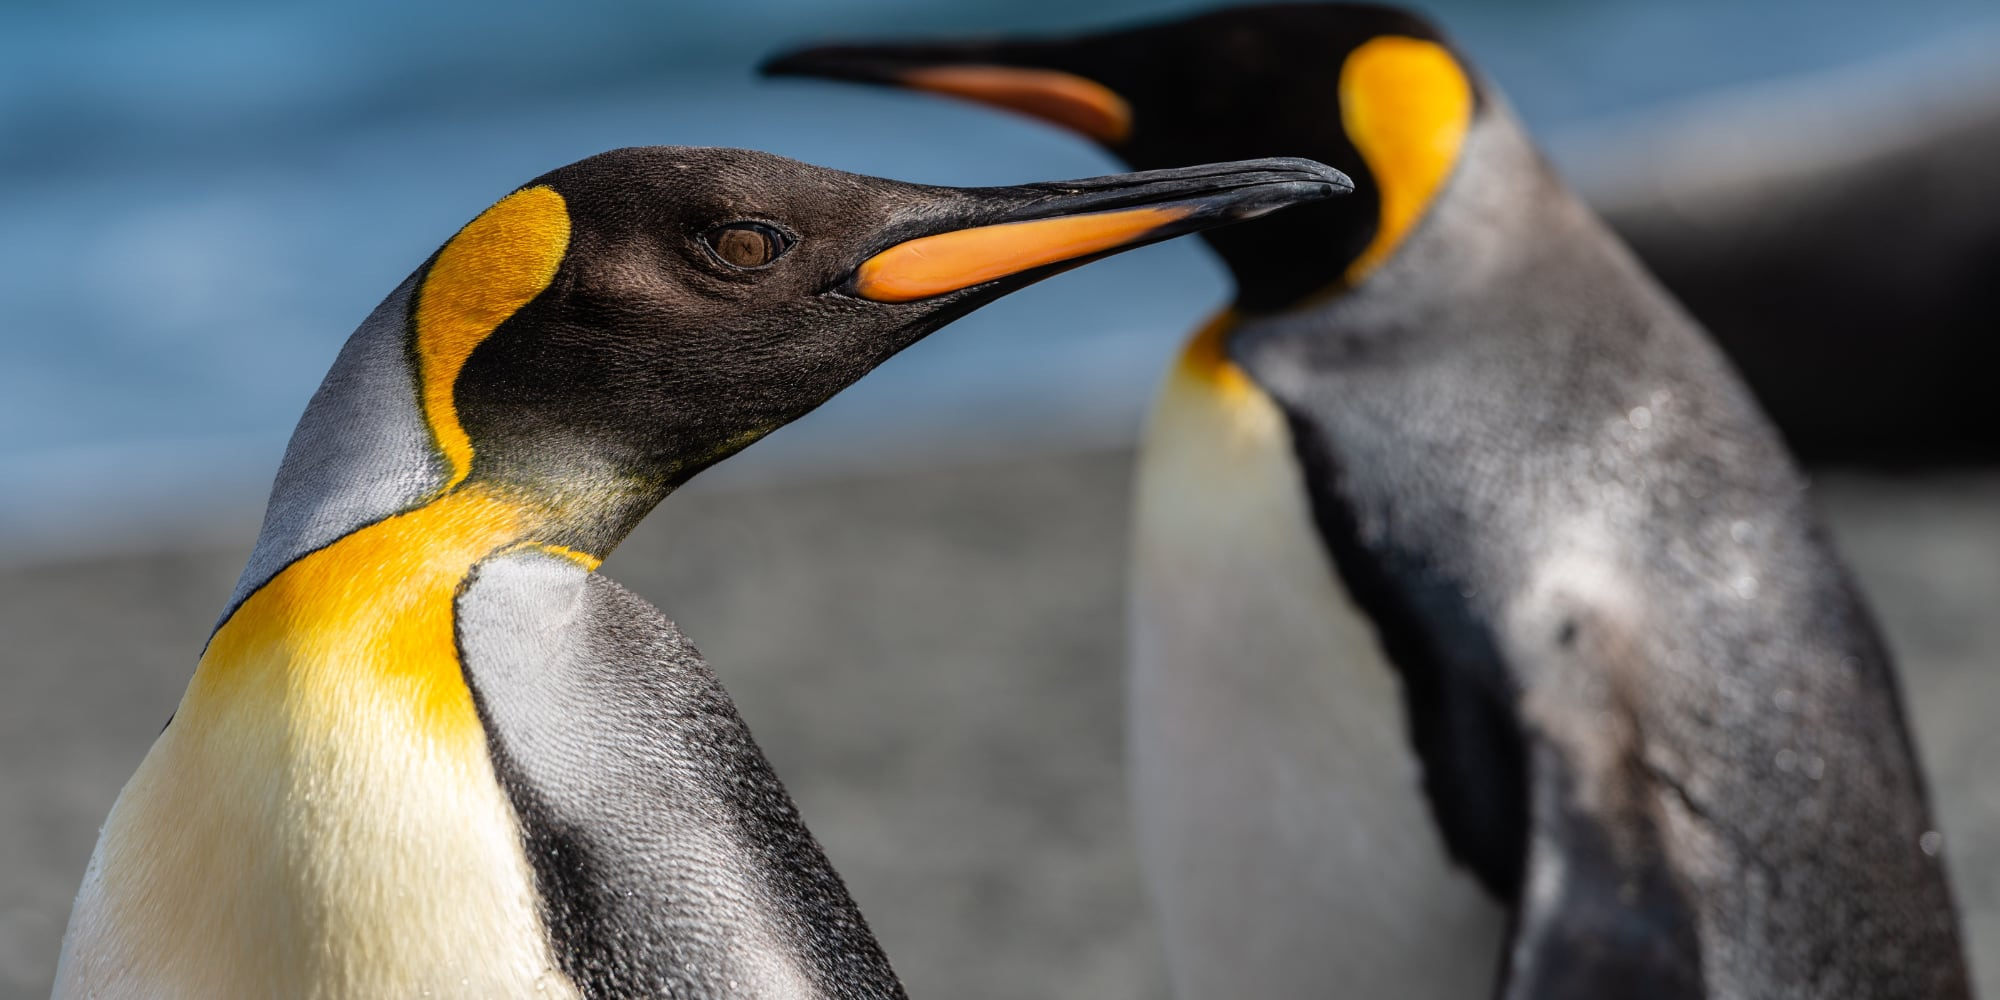 The Emperor penguin is an awesome swimmer